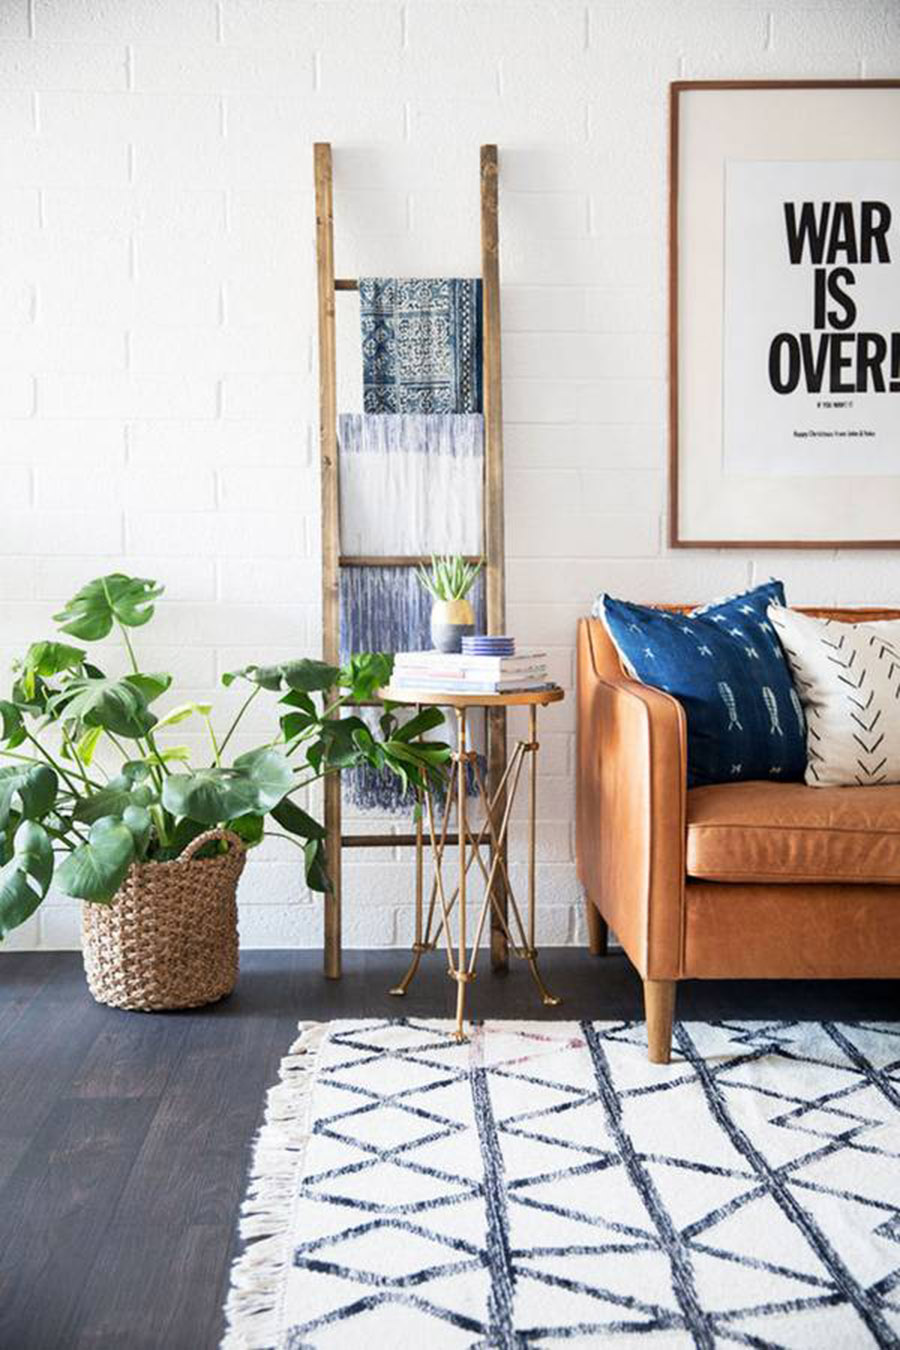 Home inspiration southwest boho minimalism a side of for Minimalist items for home